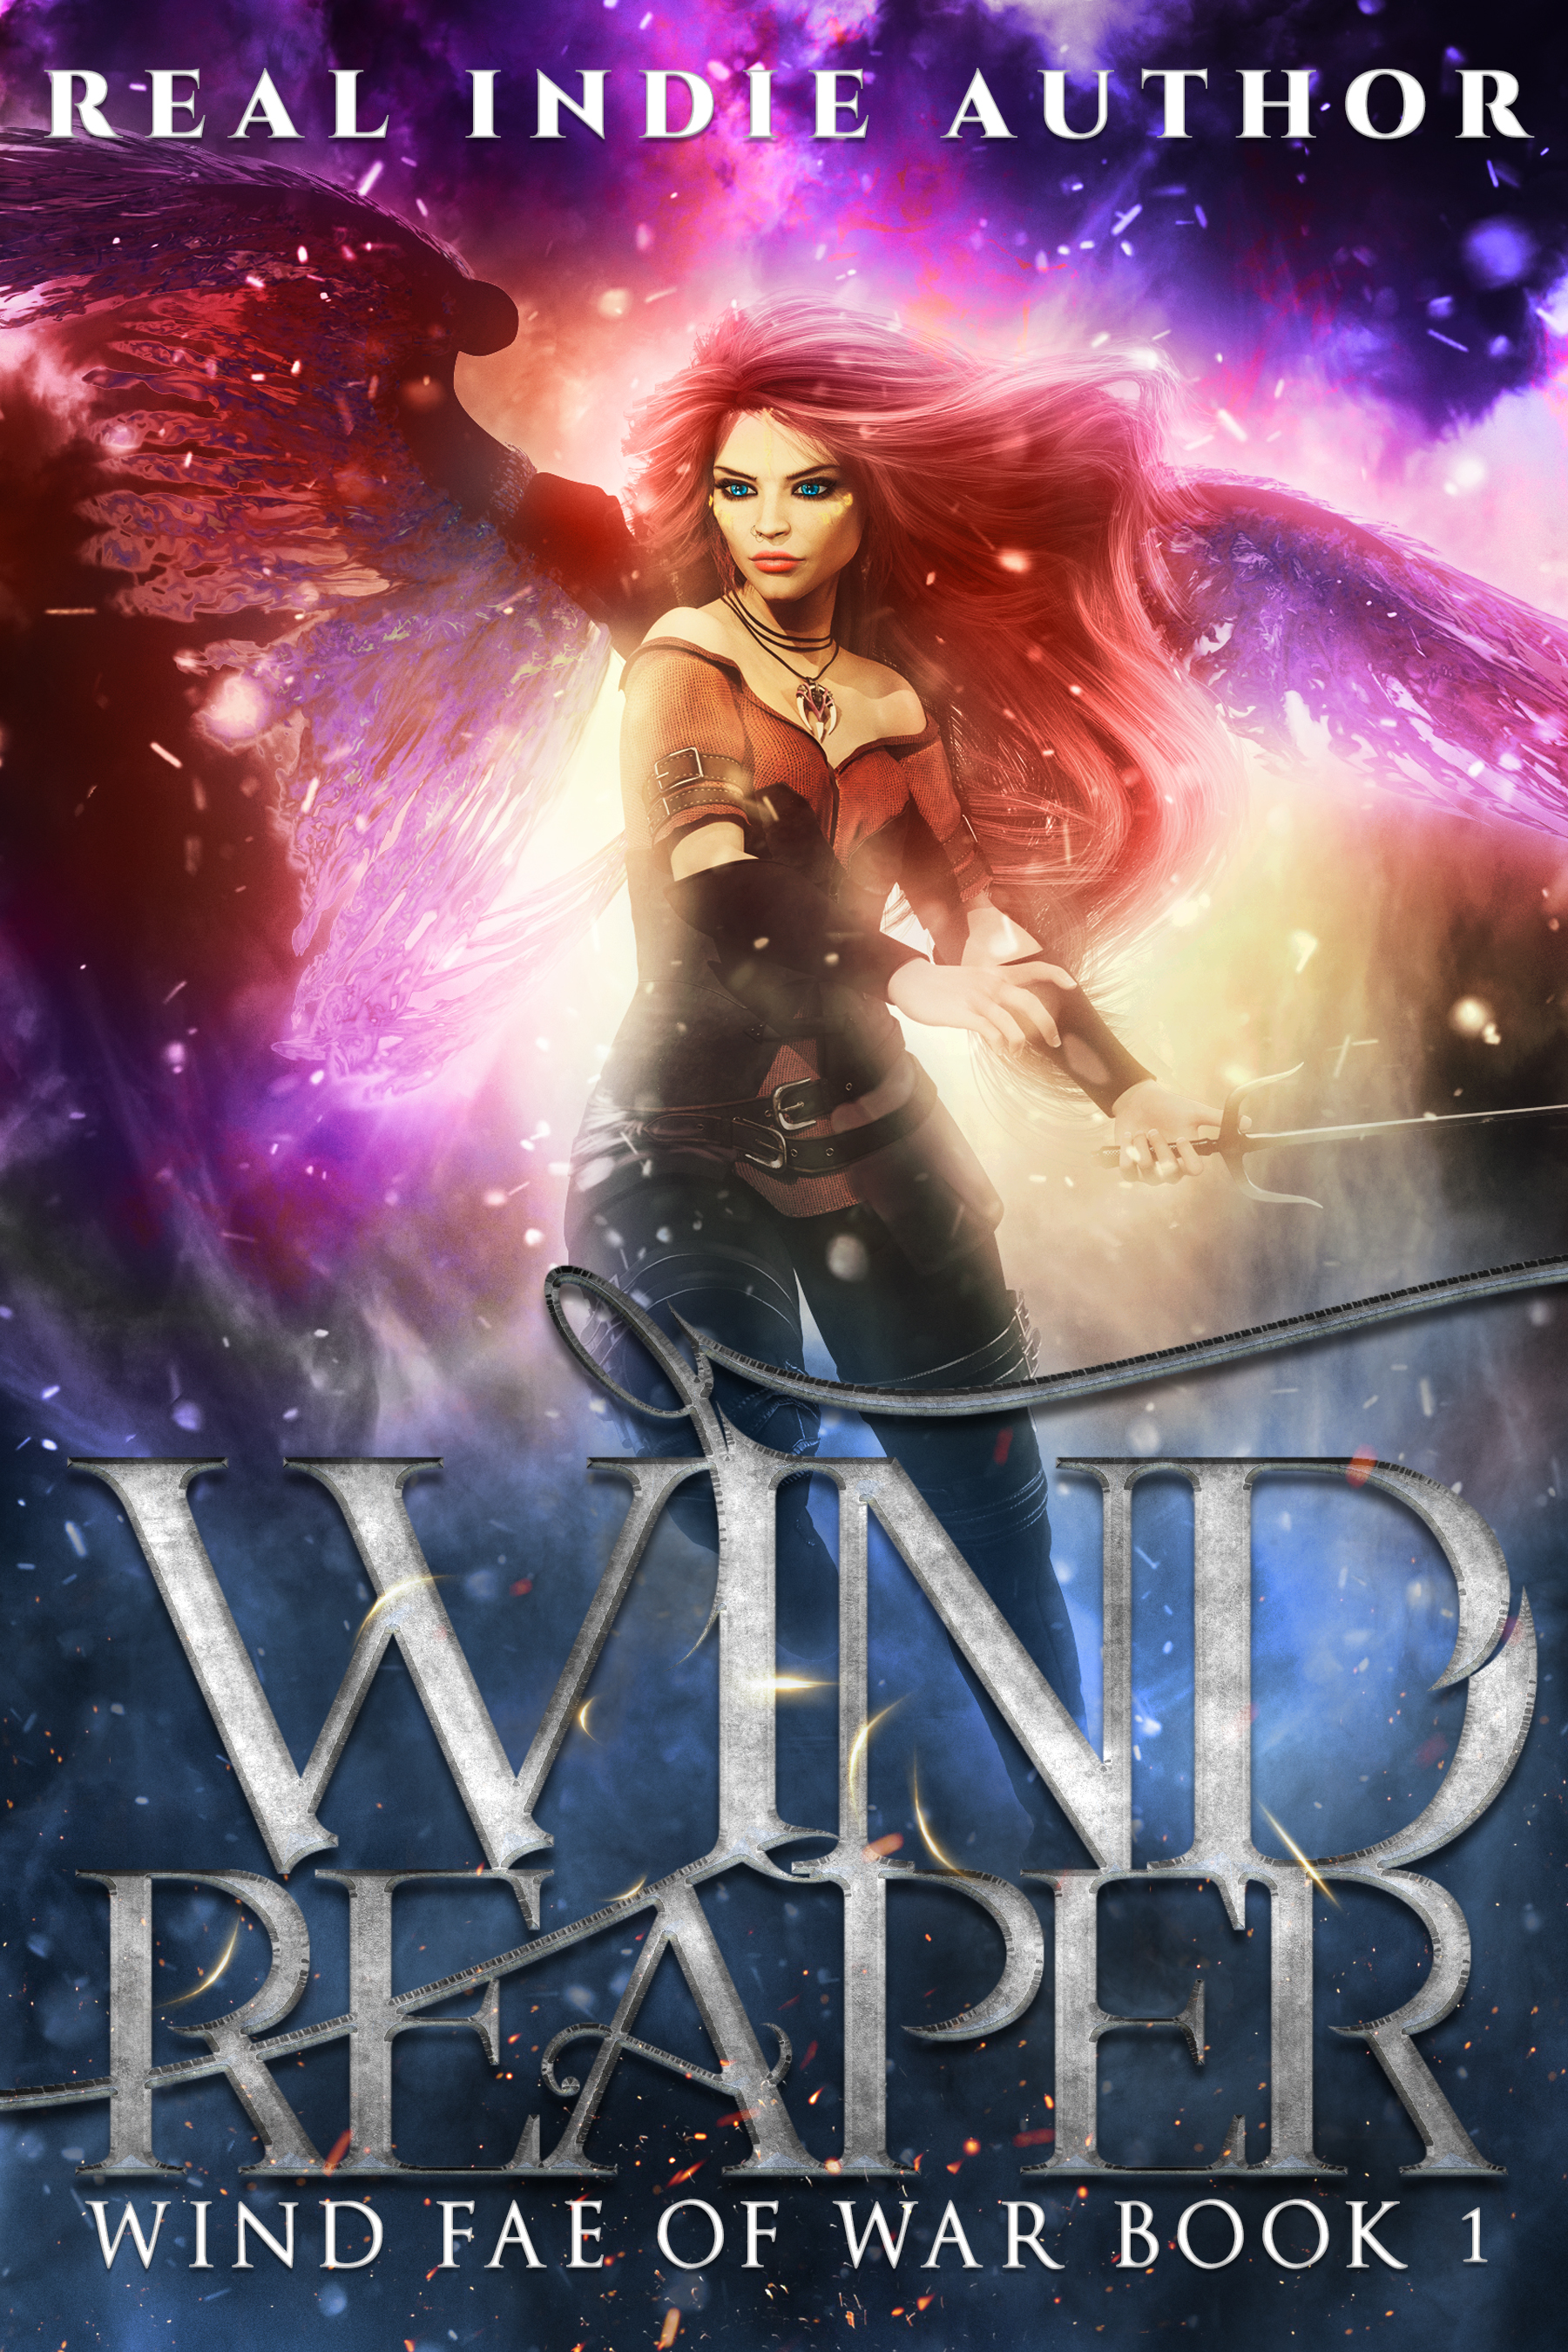 2019-03.1d Winged Woman Ebook